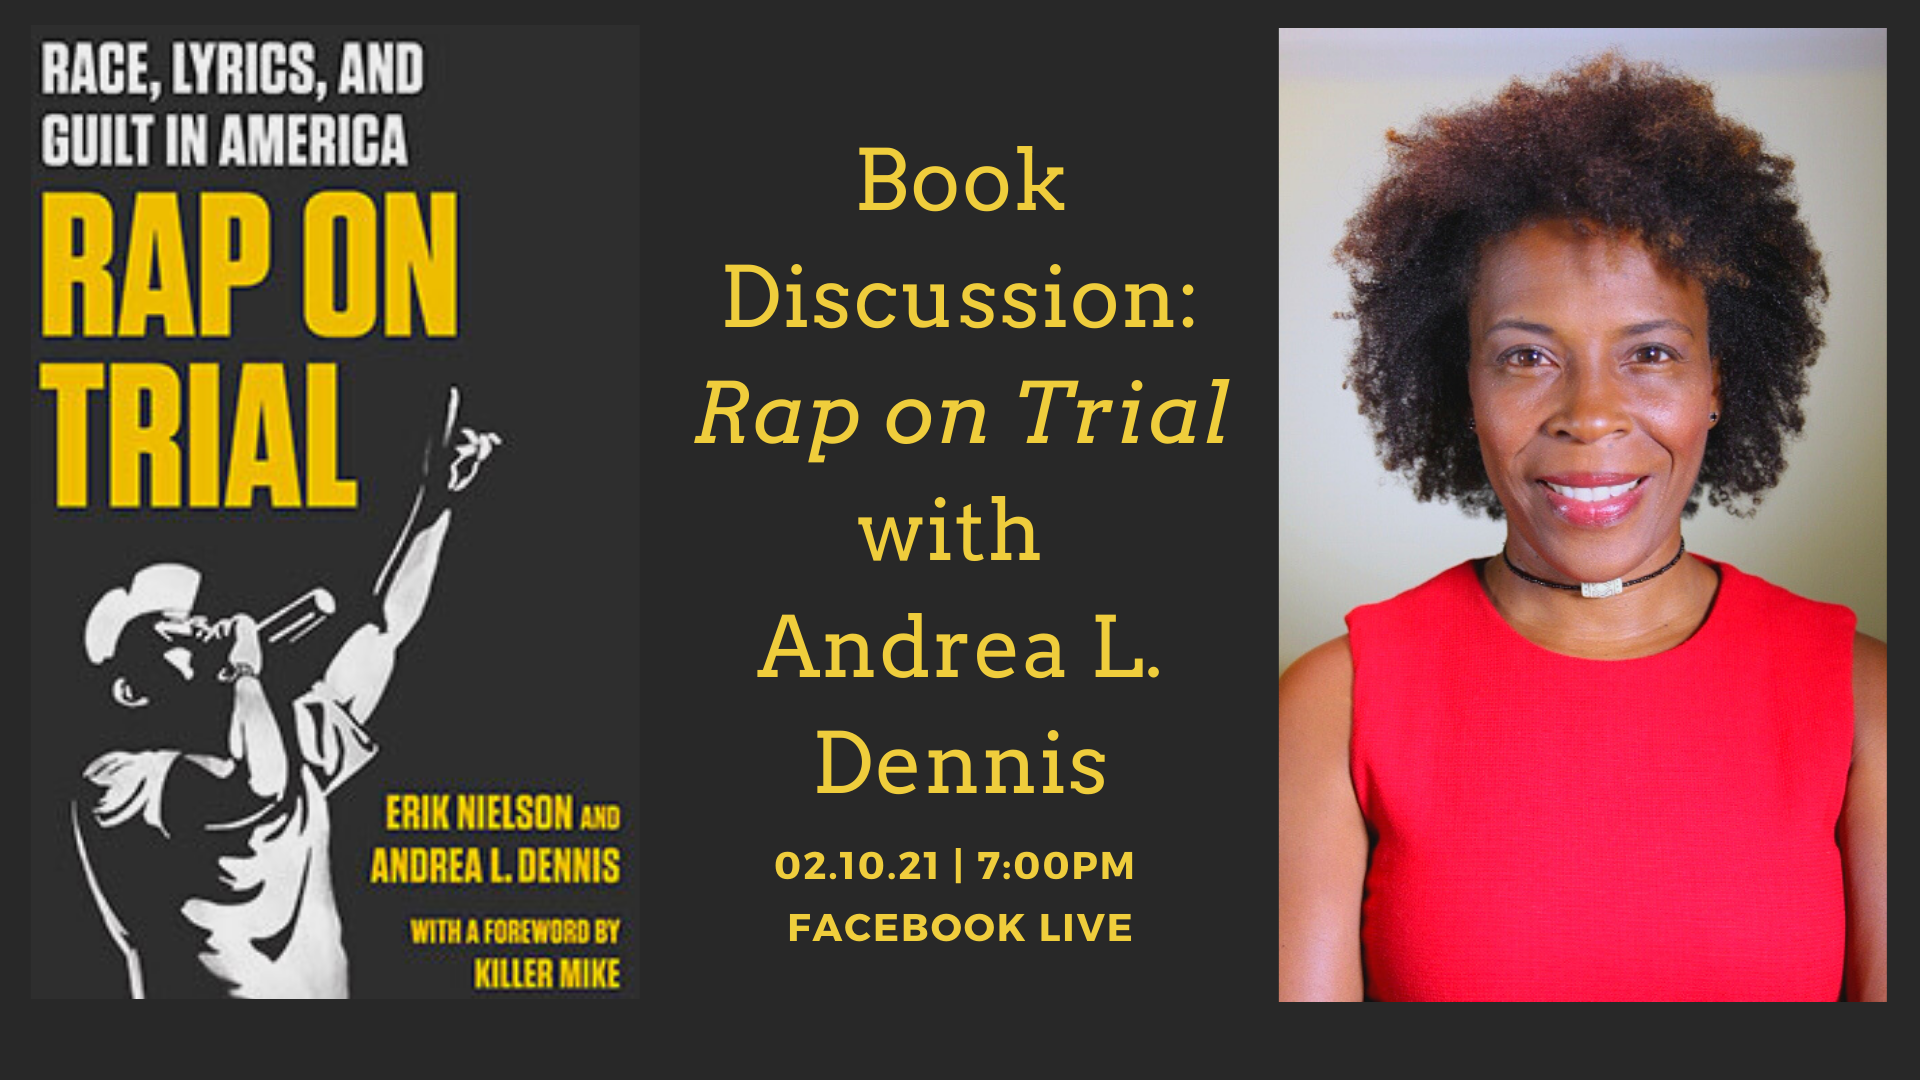 Book Discussion: Rap on Trial with Andrea L. Dennis